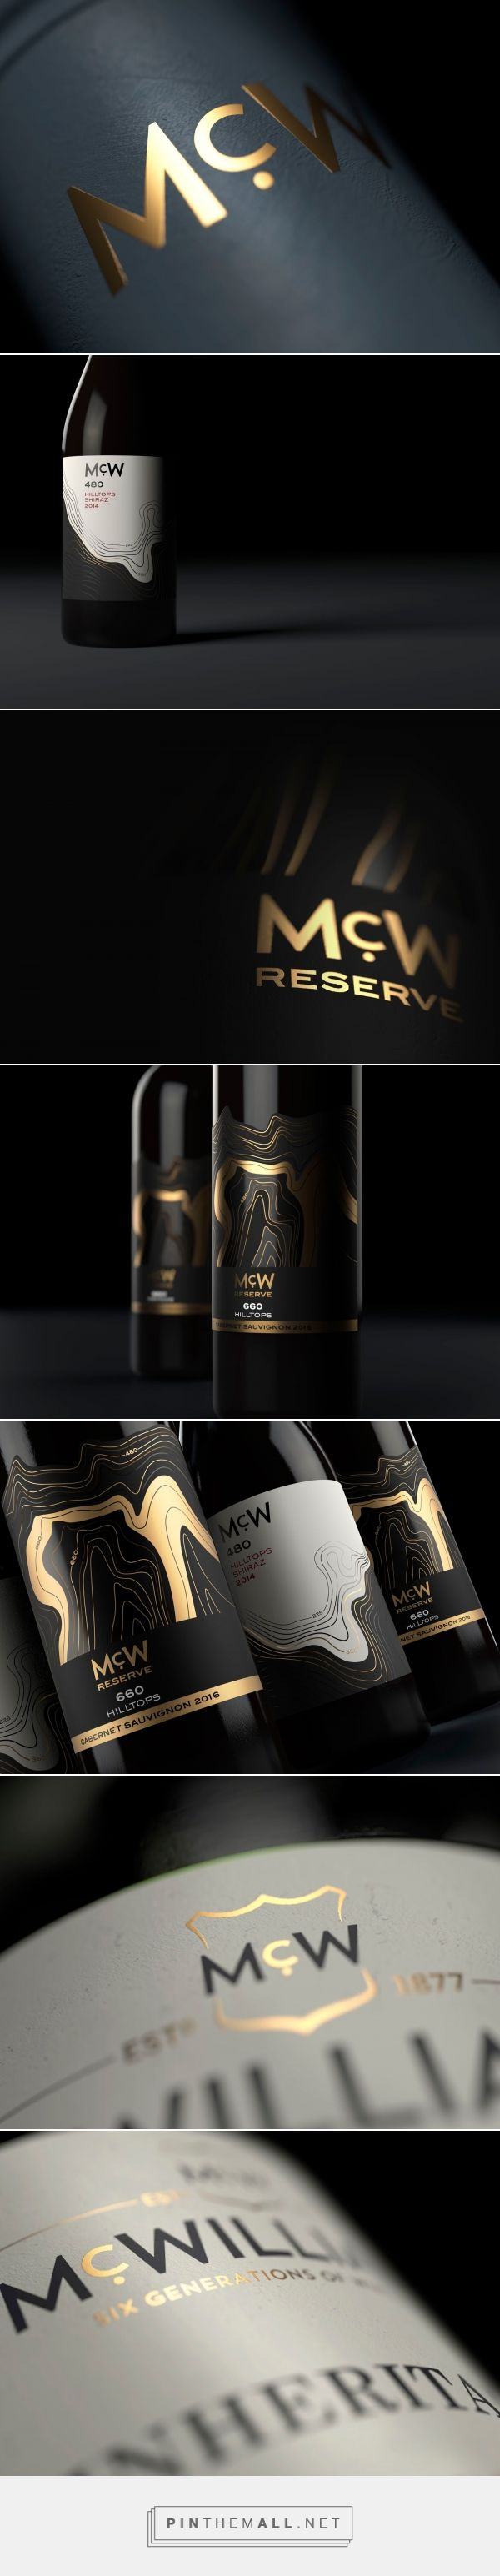 McWilliam's Wines 'McW' packaging design by JDO - http://www.packagingoftheworld.com/2017/09/mcwilliams-wines-mcw-range.html